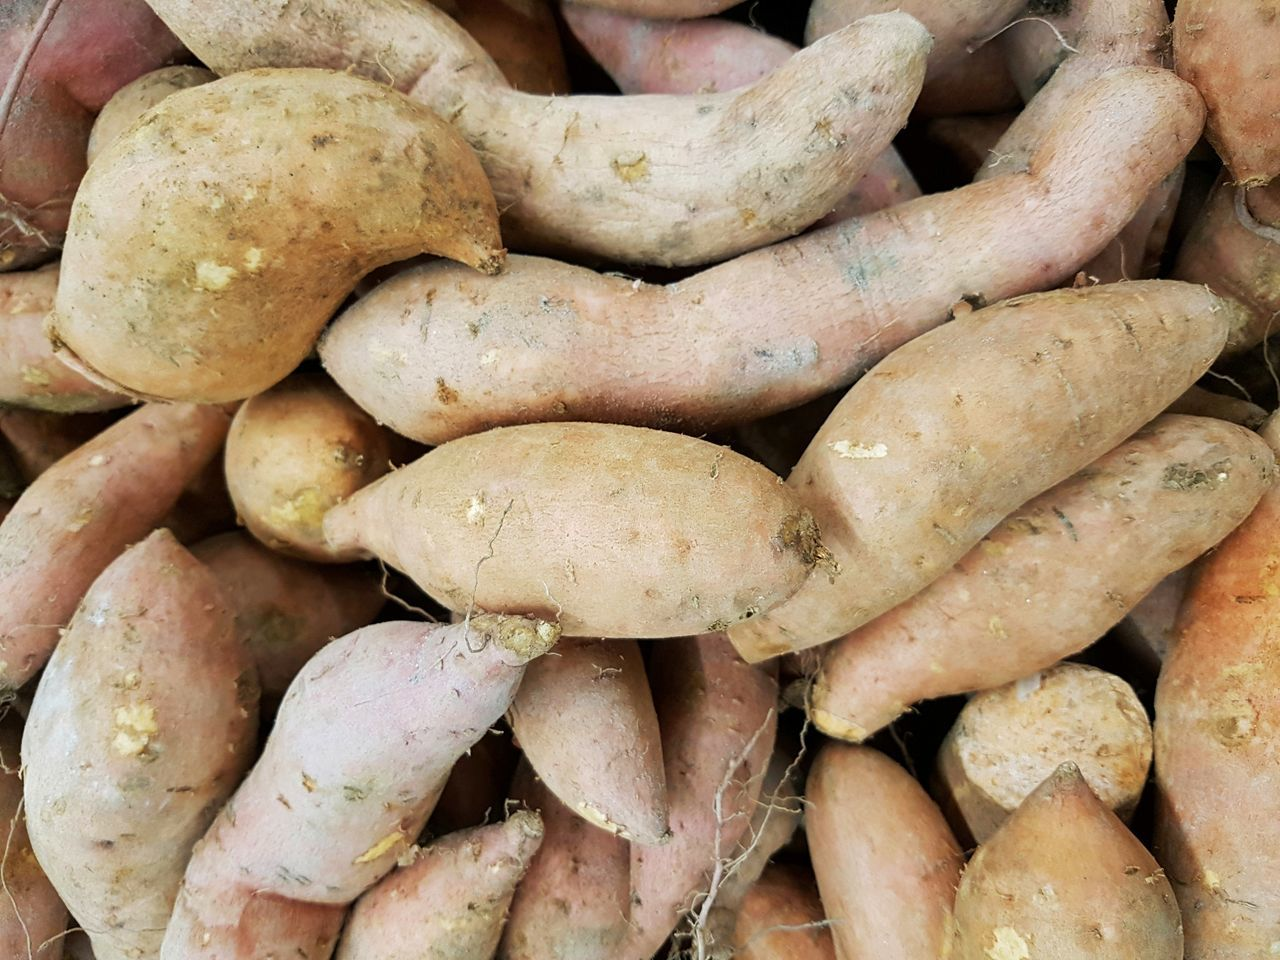 Sweetpotatoes Still Life Close-up Healthy Eating Vegetable Freshness Food Full Frame Plants Agricultural Agriculture Agronomy